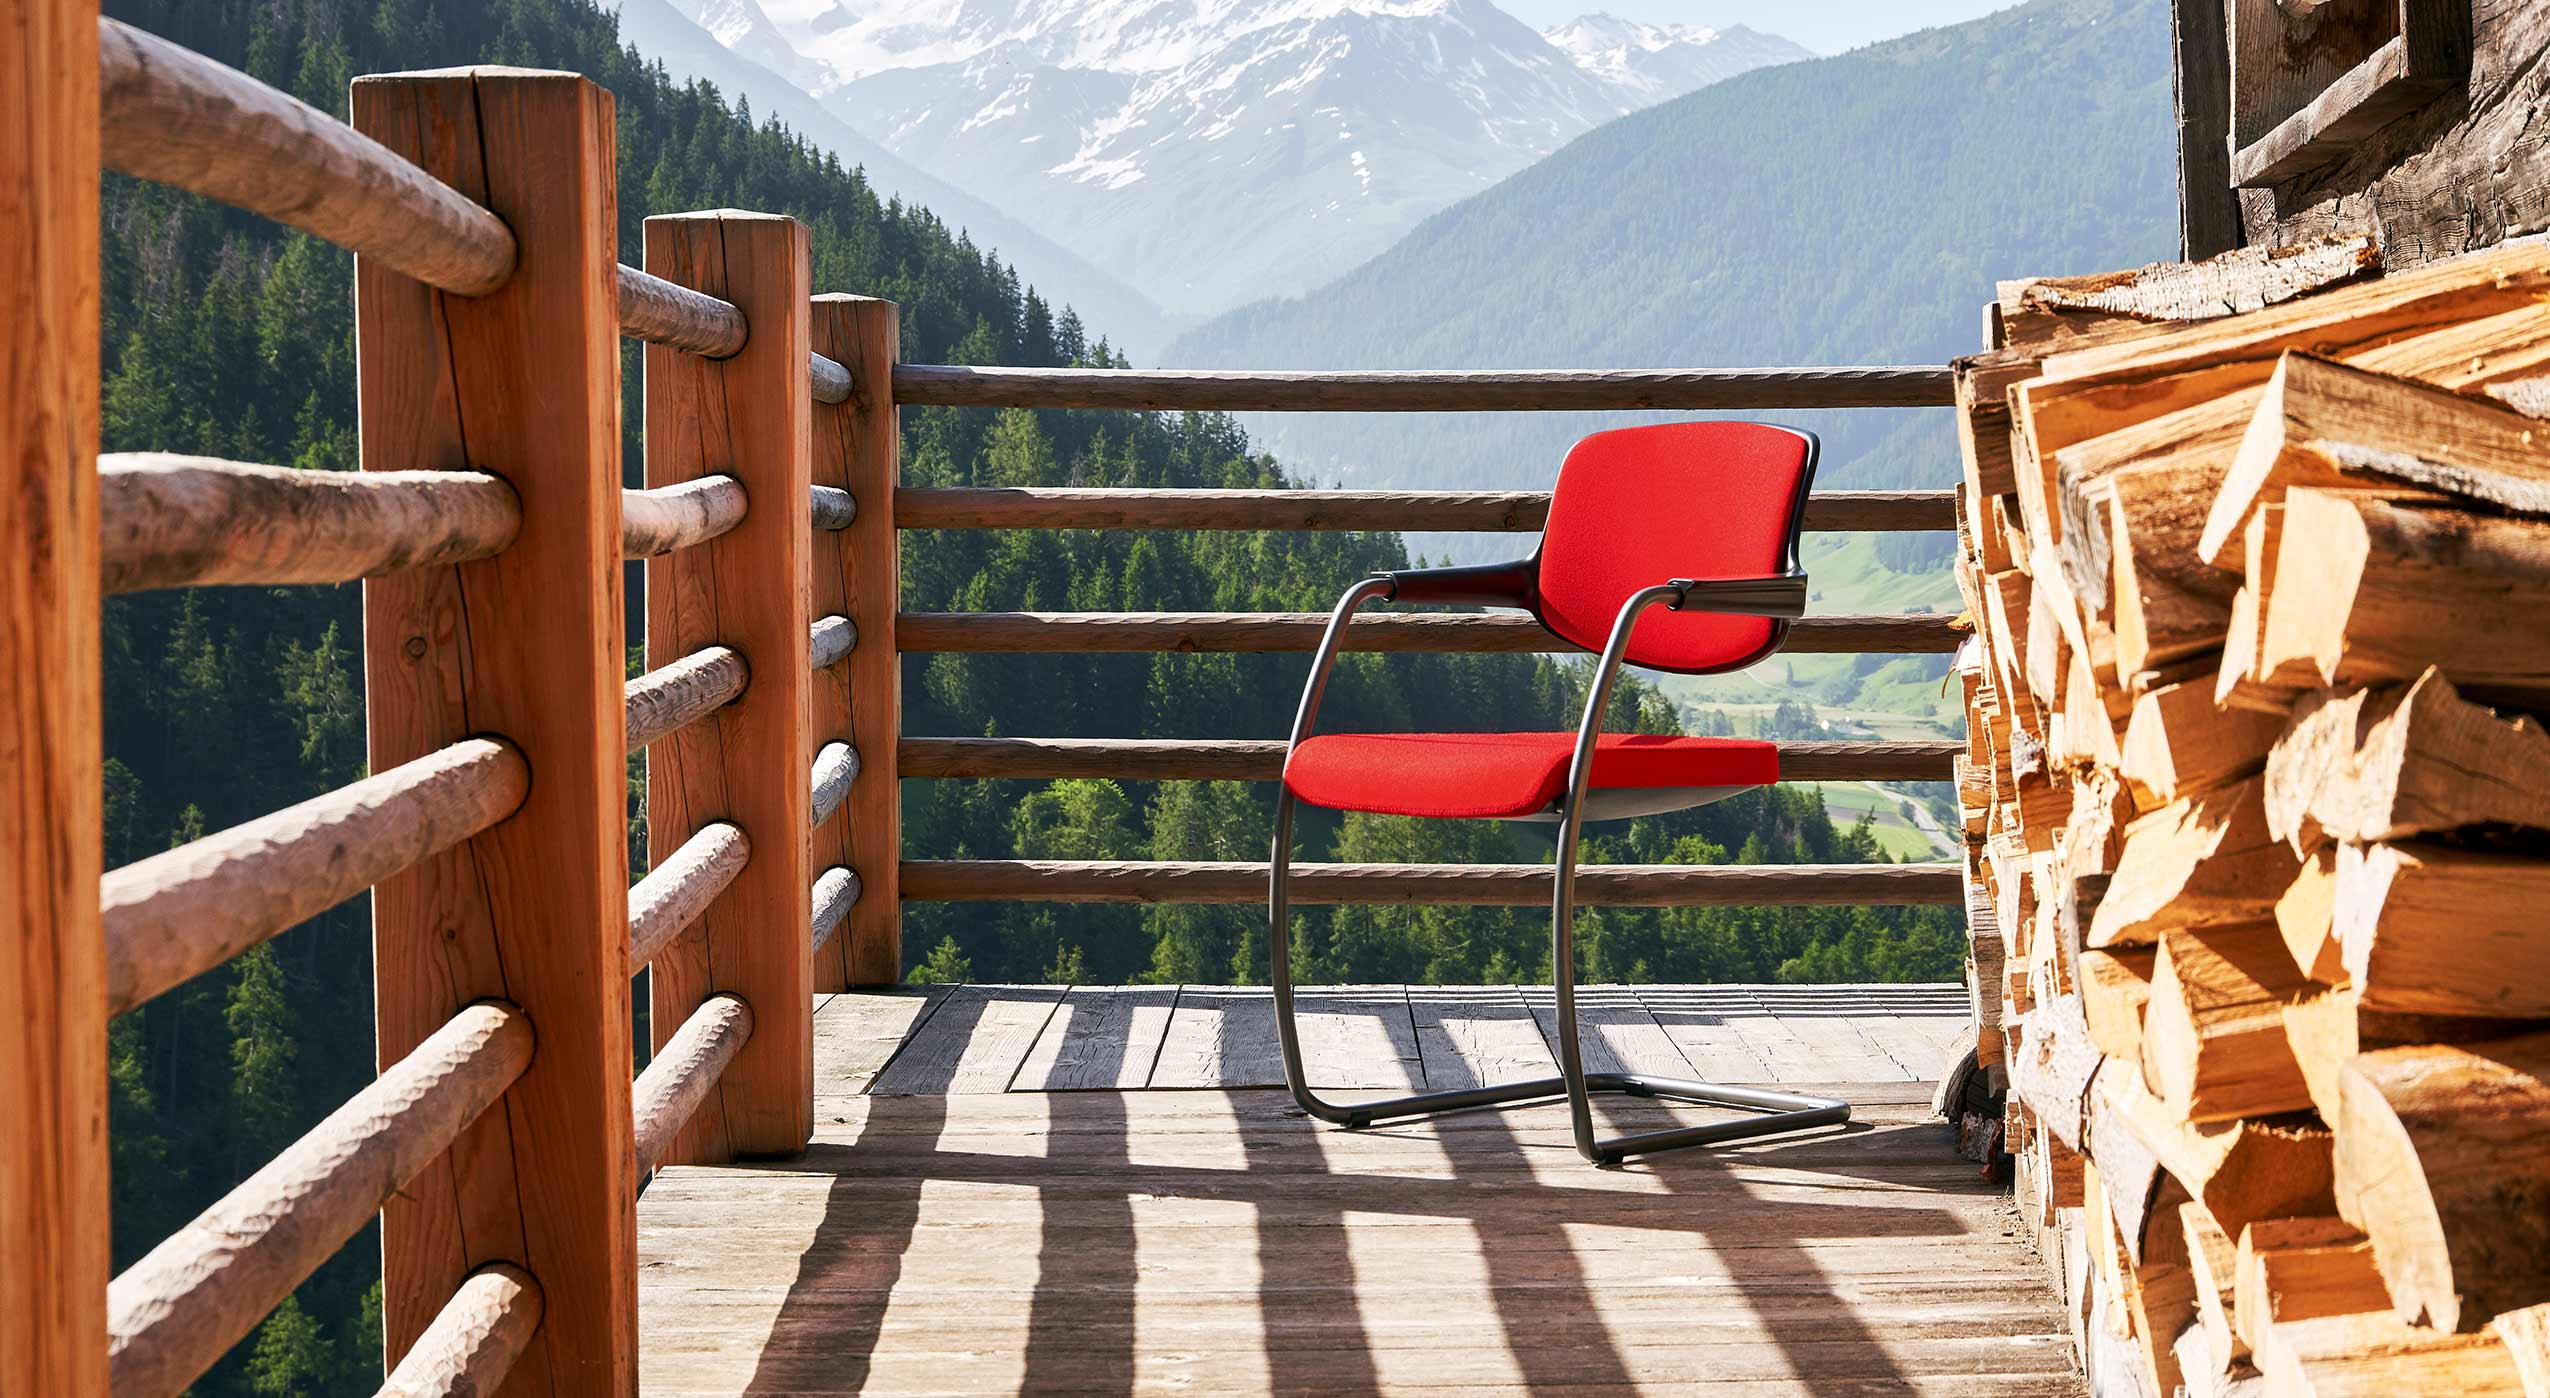 Red giroflex 161 visitor chair on a wooden balcony in the Swiss mountains